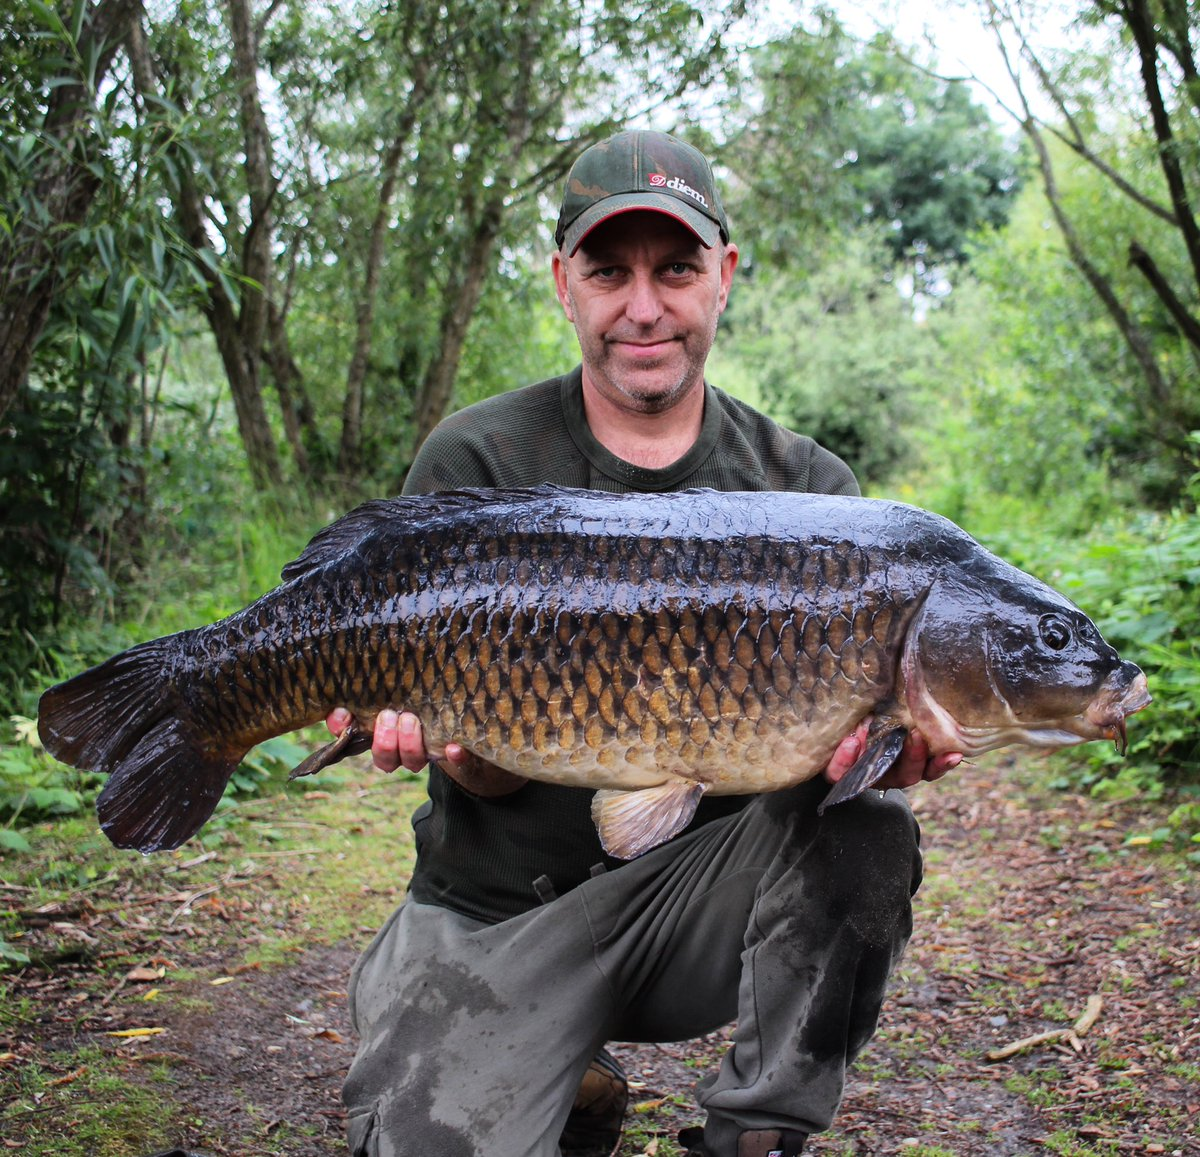 29lb another old original,love these old ones #carpfishing #boiliefishing #essex #penn<b>Reels</b> h